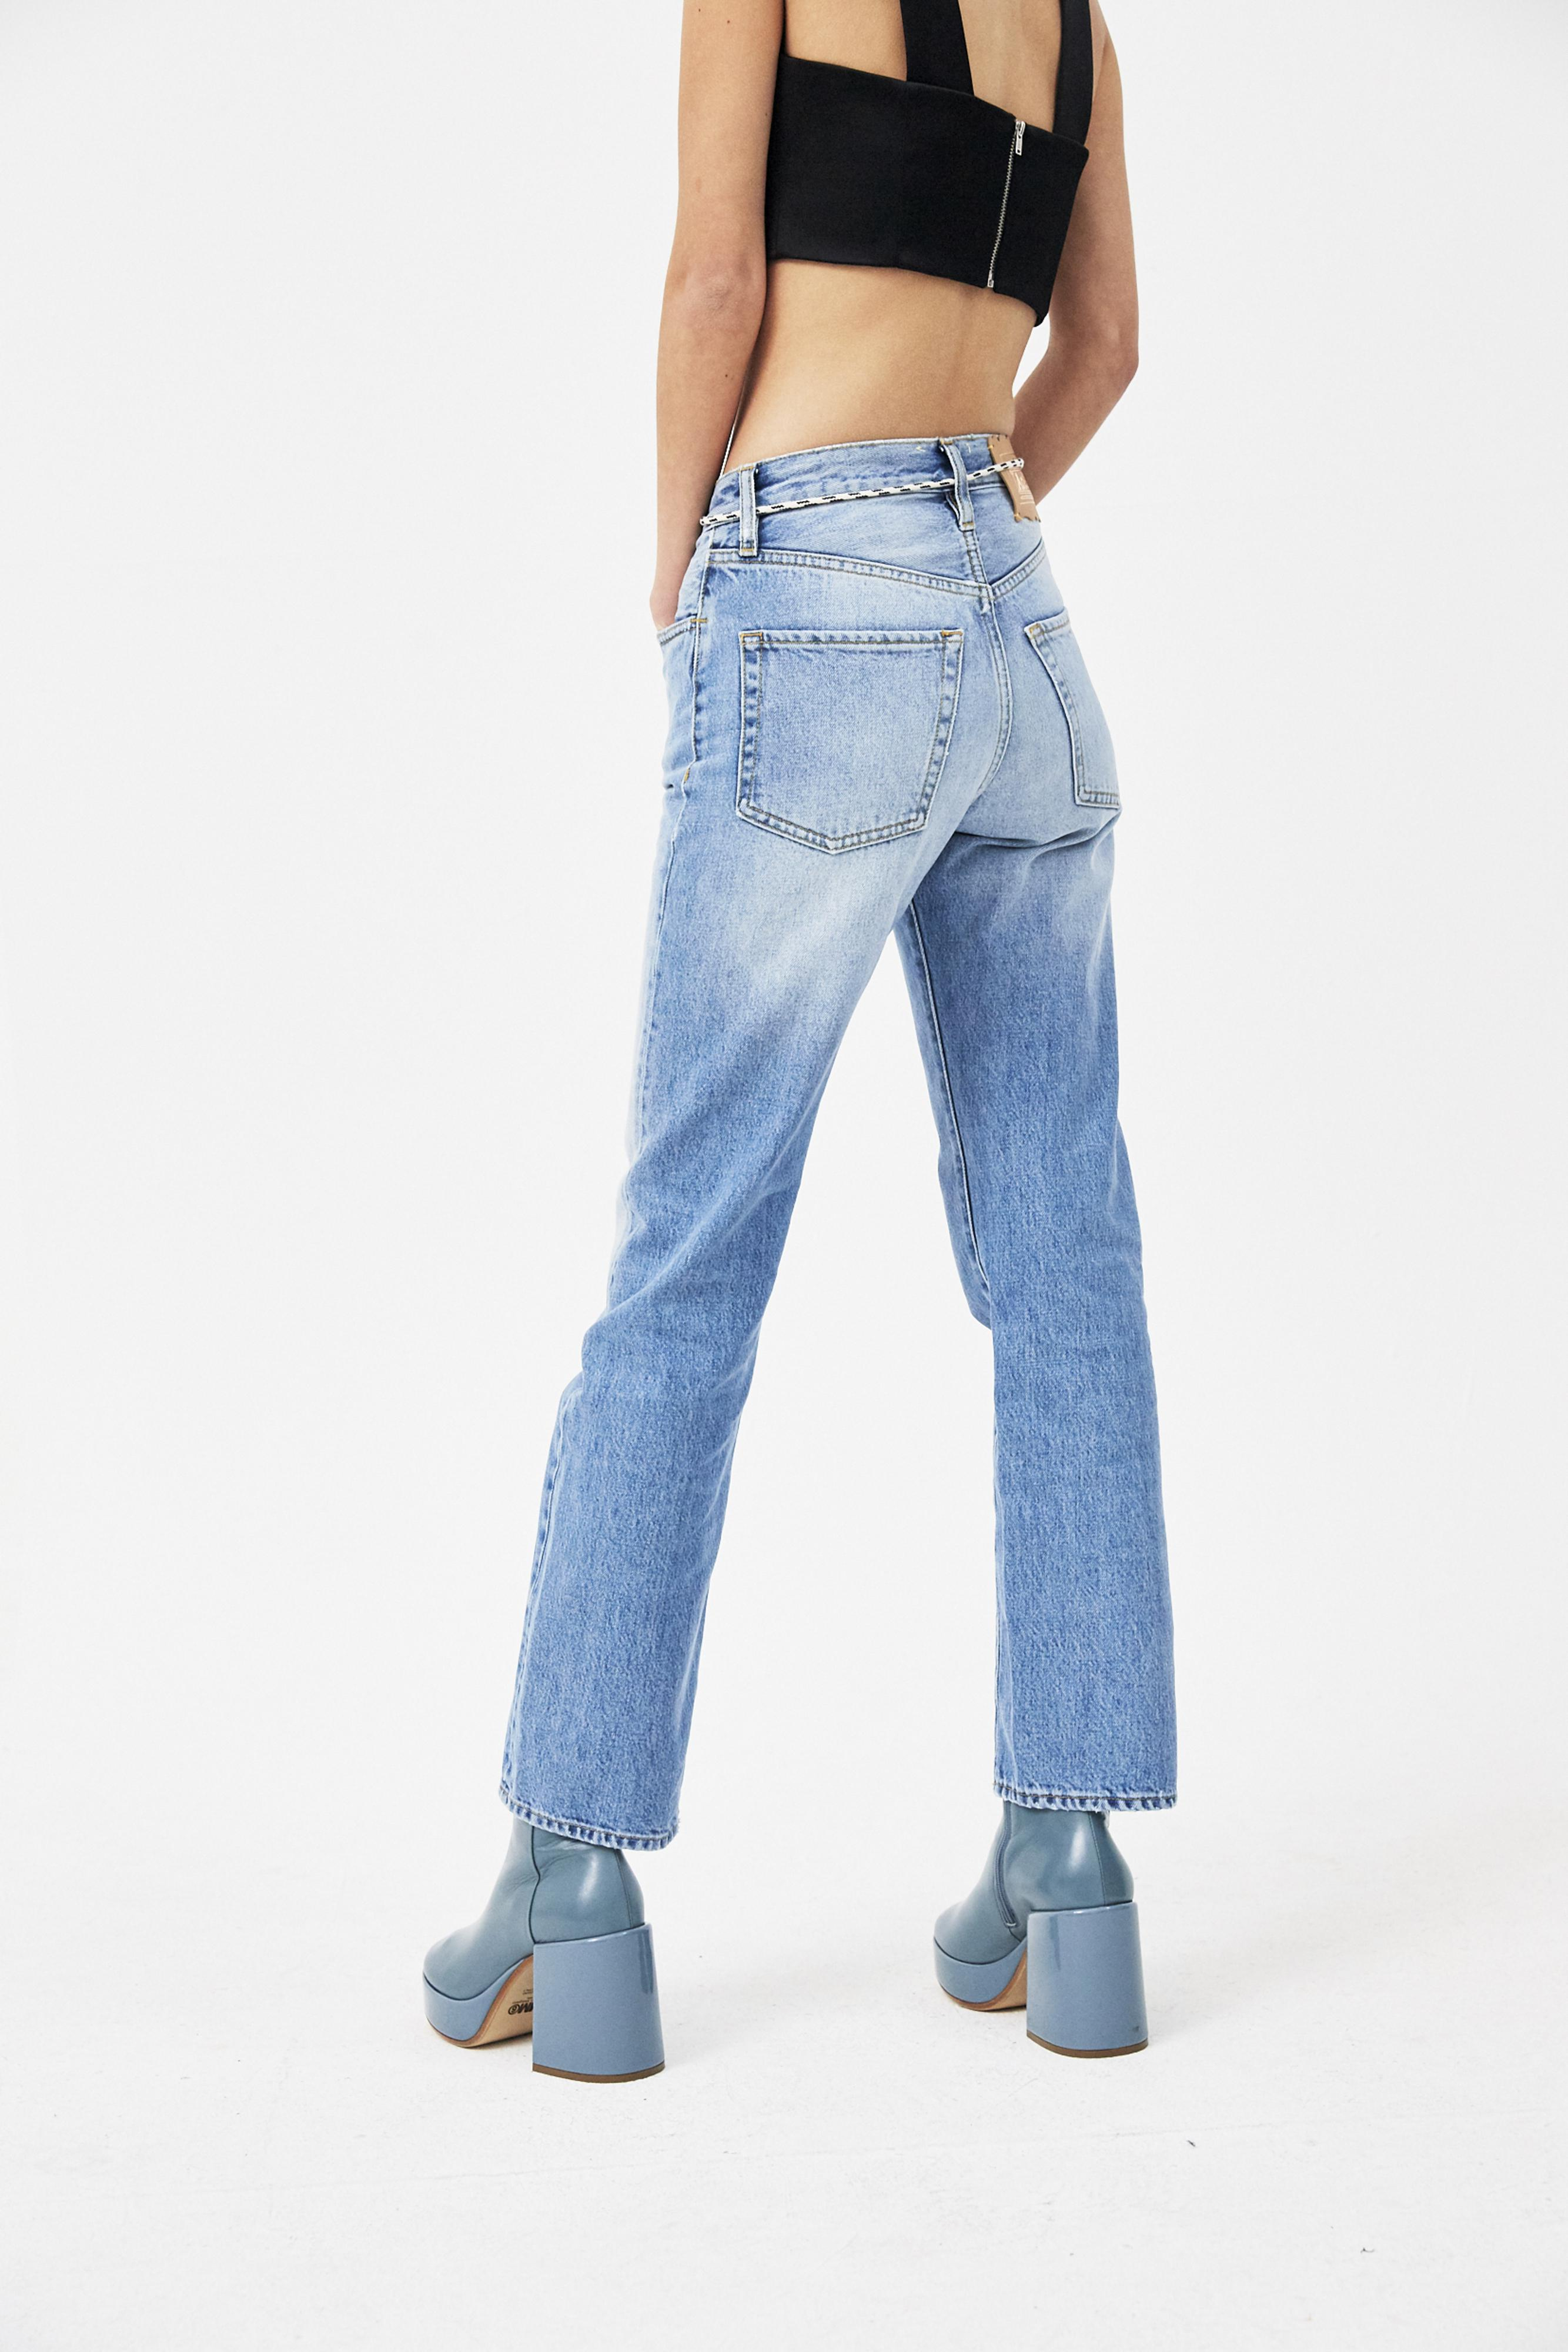 1565ad8961784b Aries Lilly Selvedge 90s Pale Jeans in Blue - Lyst